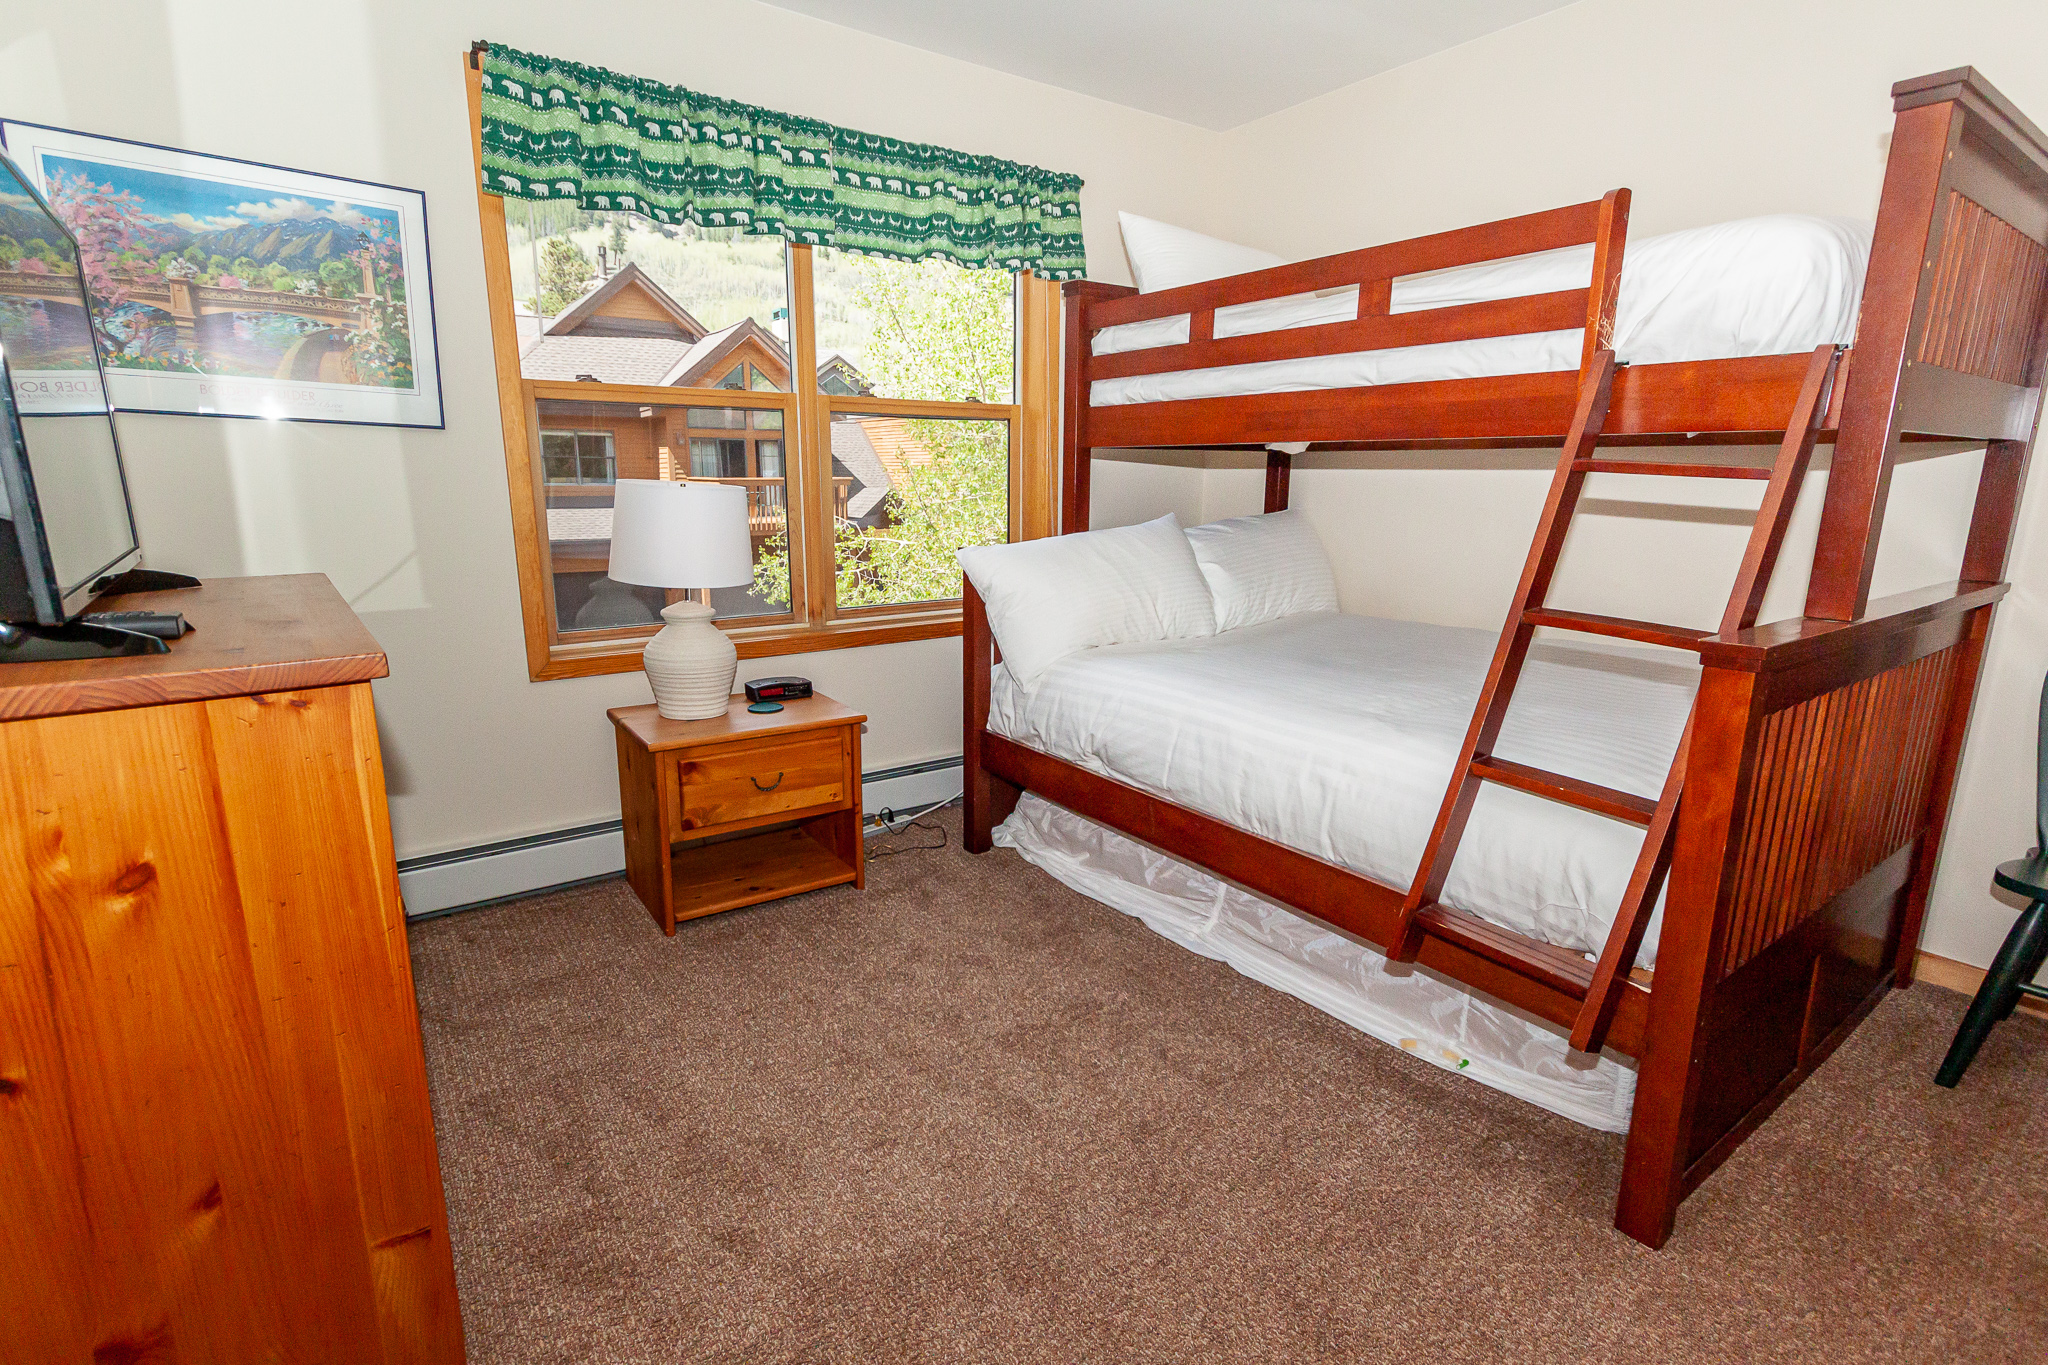 Guest bedroom featuring a twin-over-full bunk bed and flat screen TV.